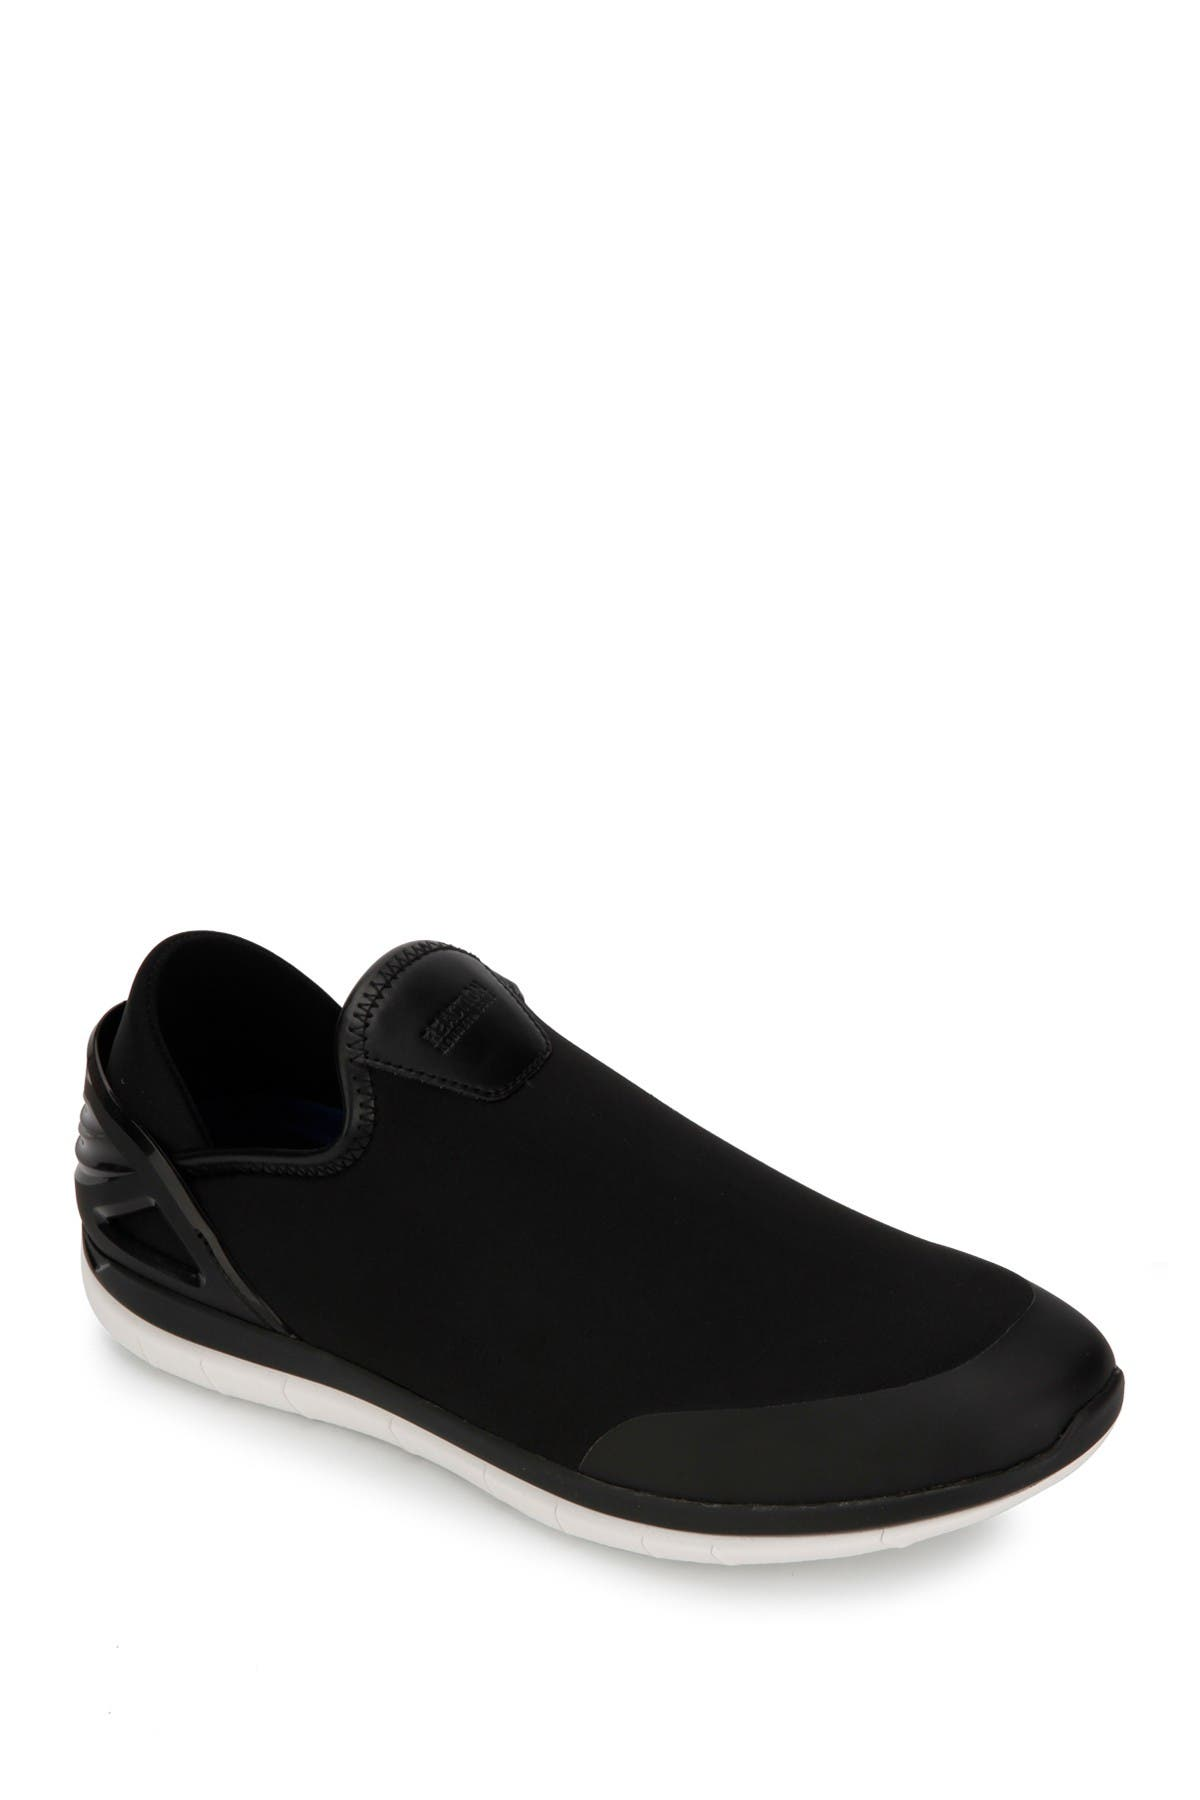 Image of Kenneth Cole Reaction Slip-On Sneaker